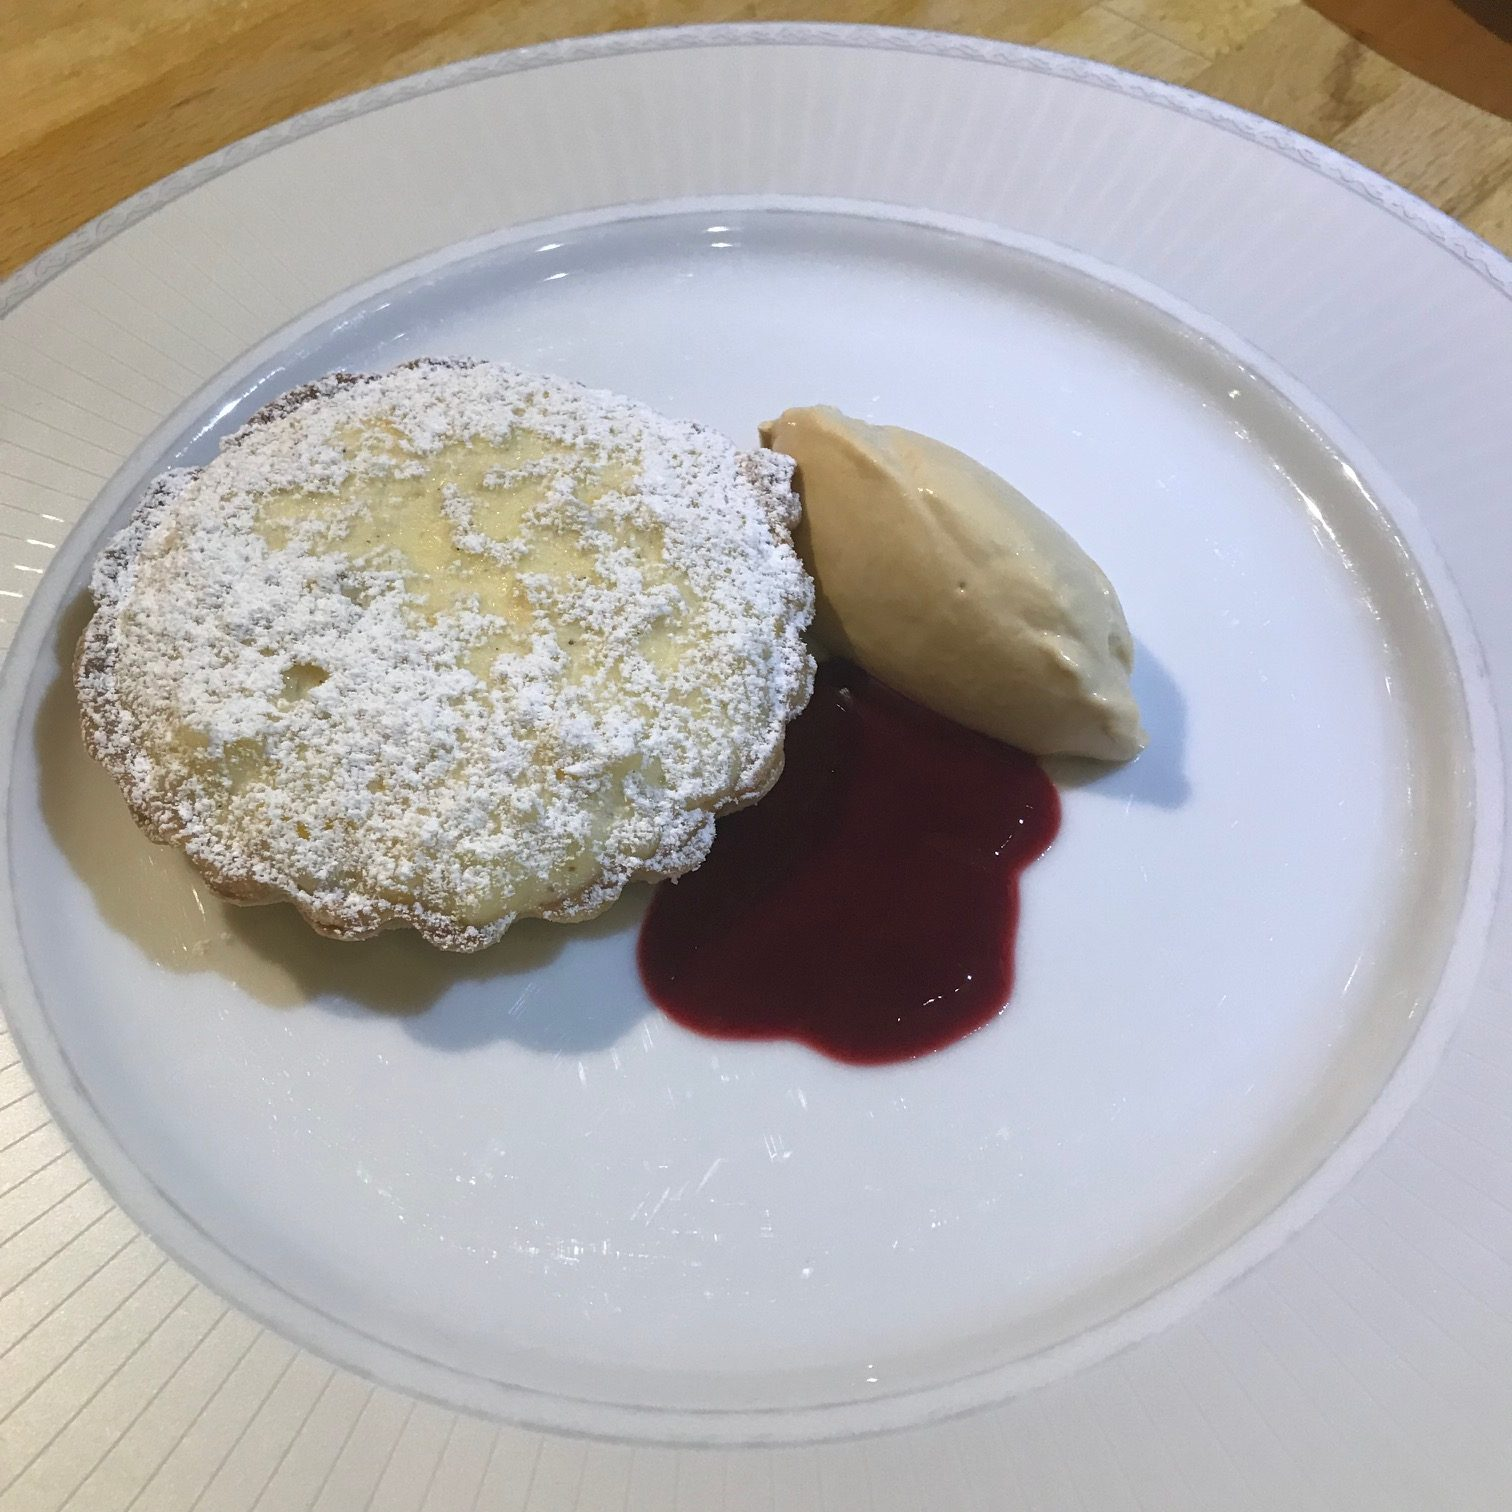 20190909 - Raspberry Rice Pudding Tart with Raspberry Sauce